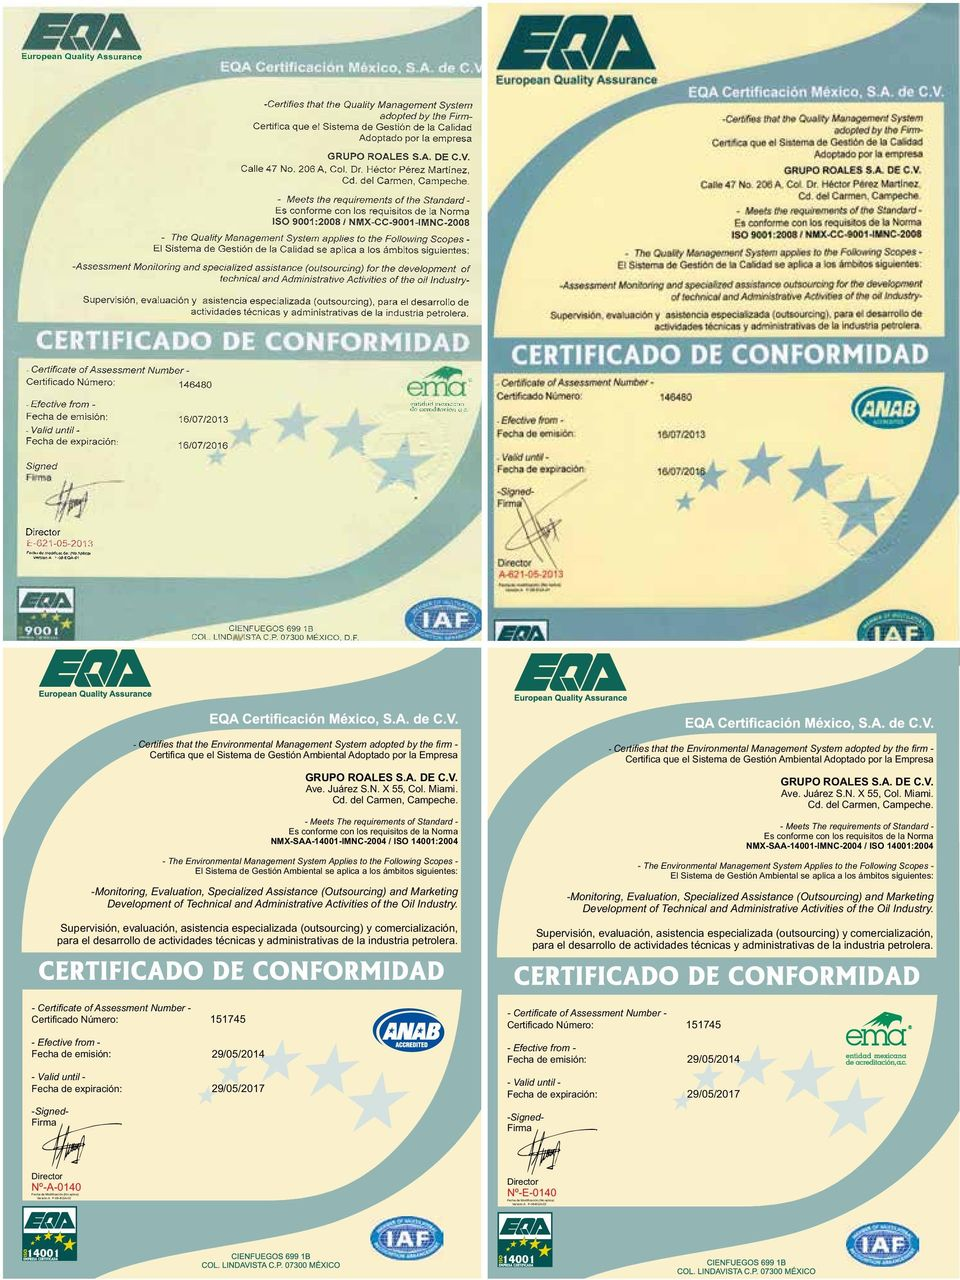 - Meets The requirements of Standard - Es conforme con los requisitos de la Norma NMX-SAA-14001-IMNC-2004 / ISO 14001:2004 - The Environmental Management System Applies to the Following Scopes - El